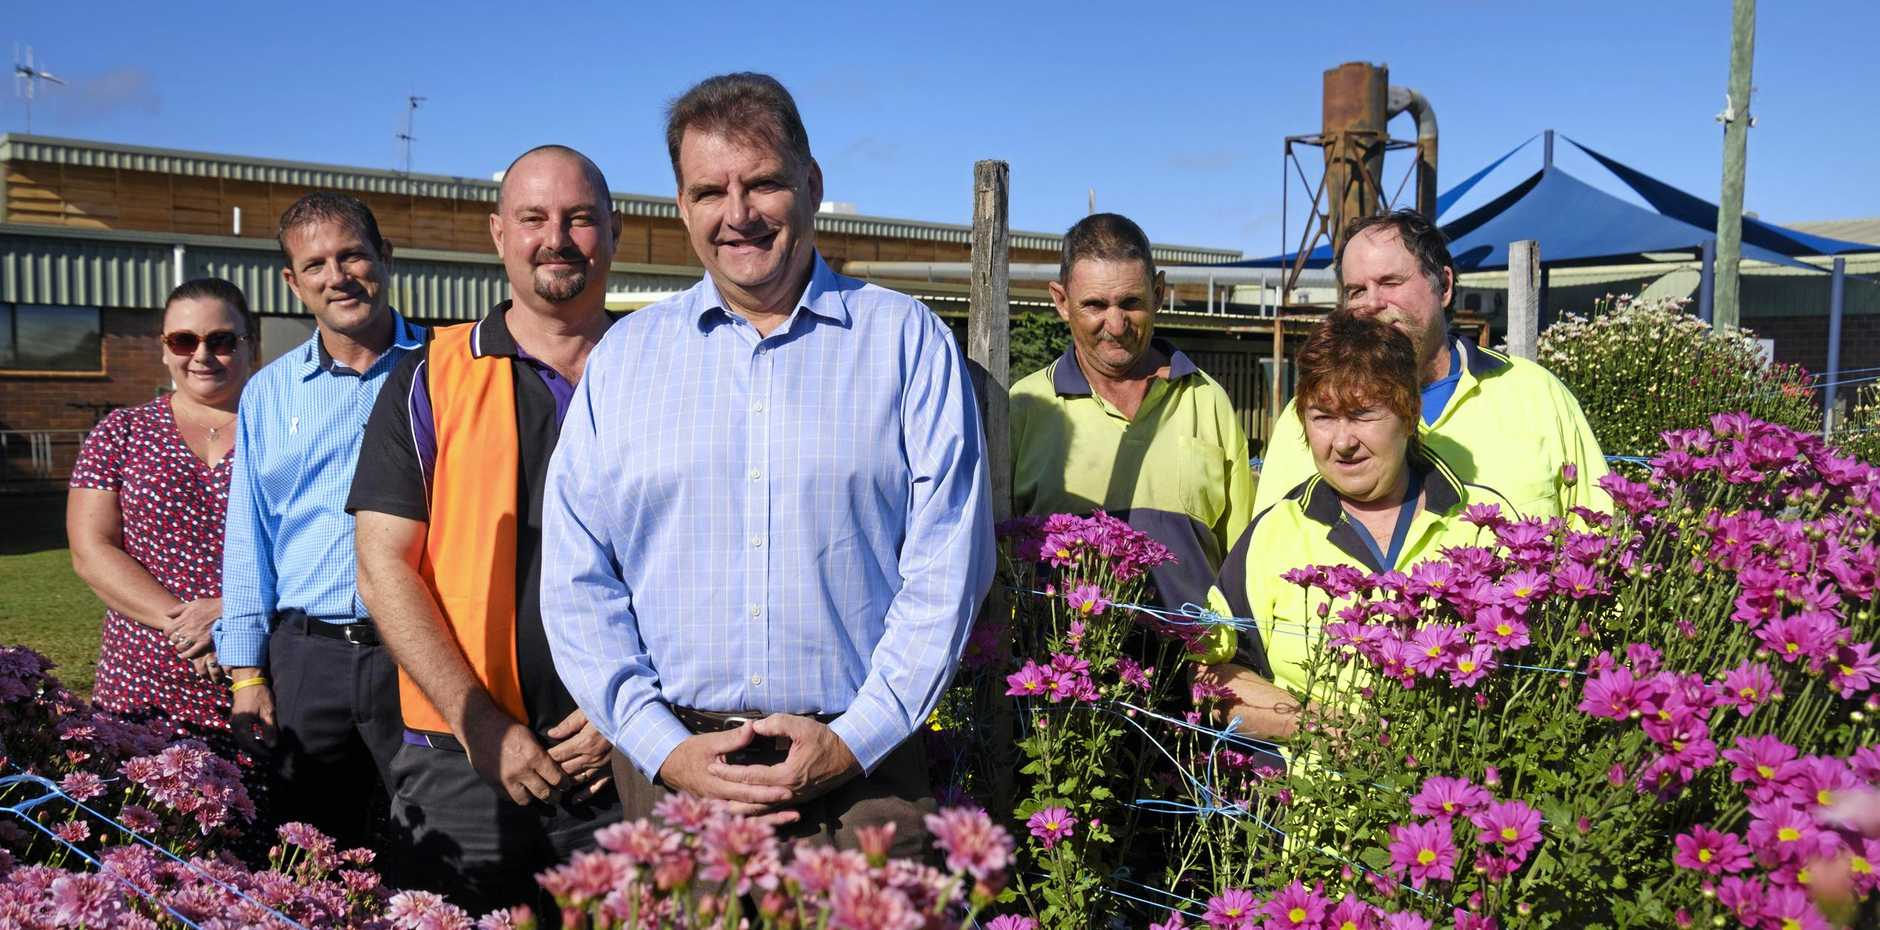 FLOWERS FOR MUM: Rowena Hanlon, David Batt, Robert Campbell and Stephen Bennett with Endeavour workers Gavin Chapman, Wayne Horton and Kaylene Sharkey.